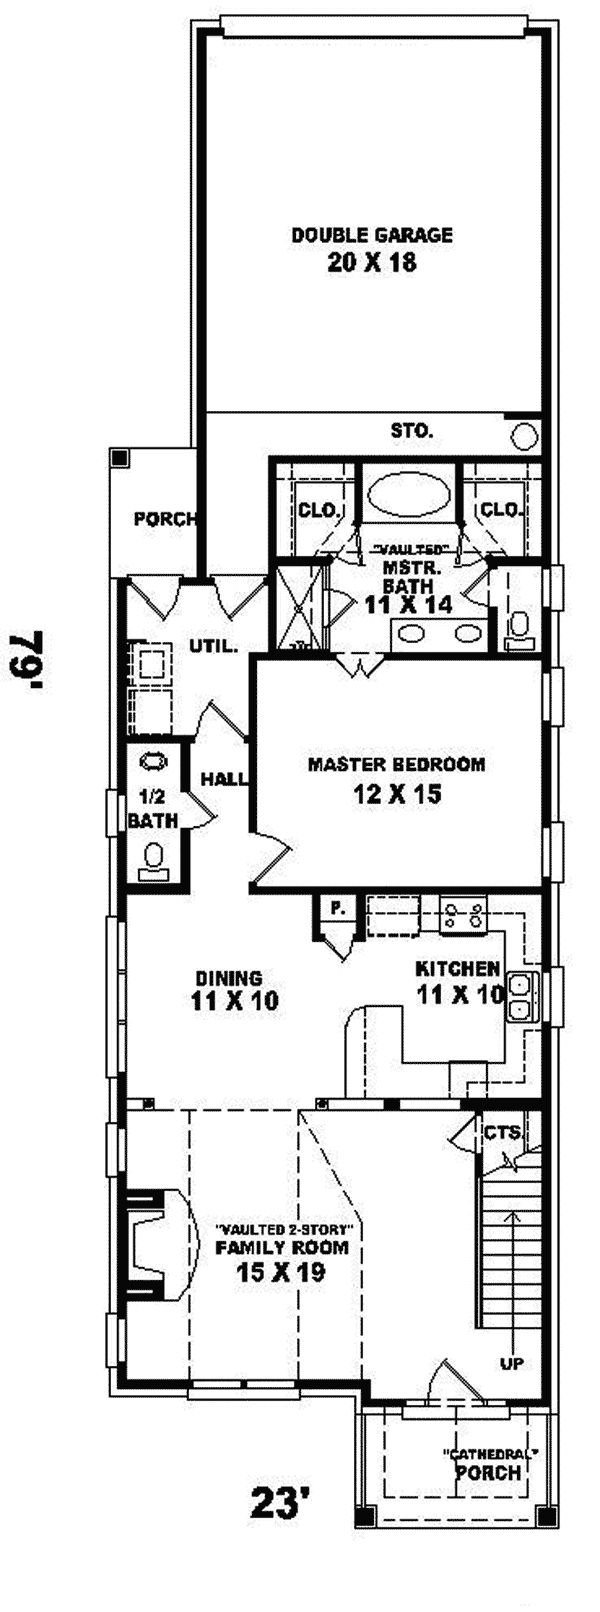 best 25 narrow house plans ideas that you will like on pinterest enderby park narrow lot home narrow house plansgarage